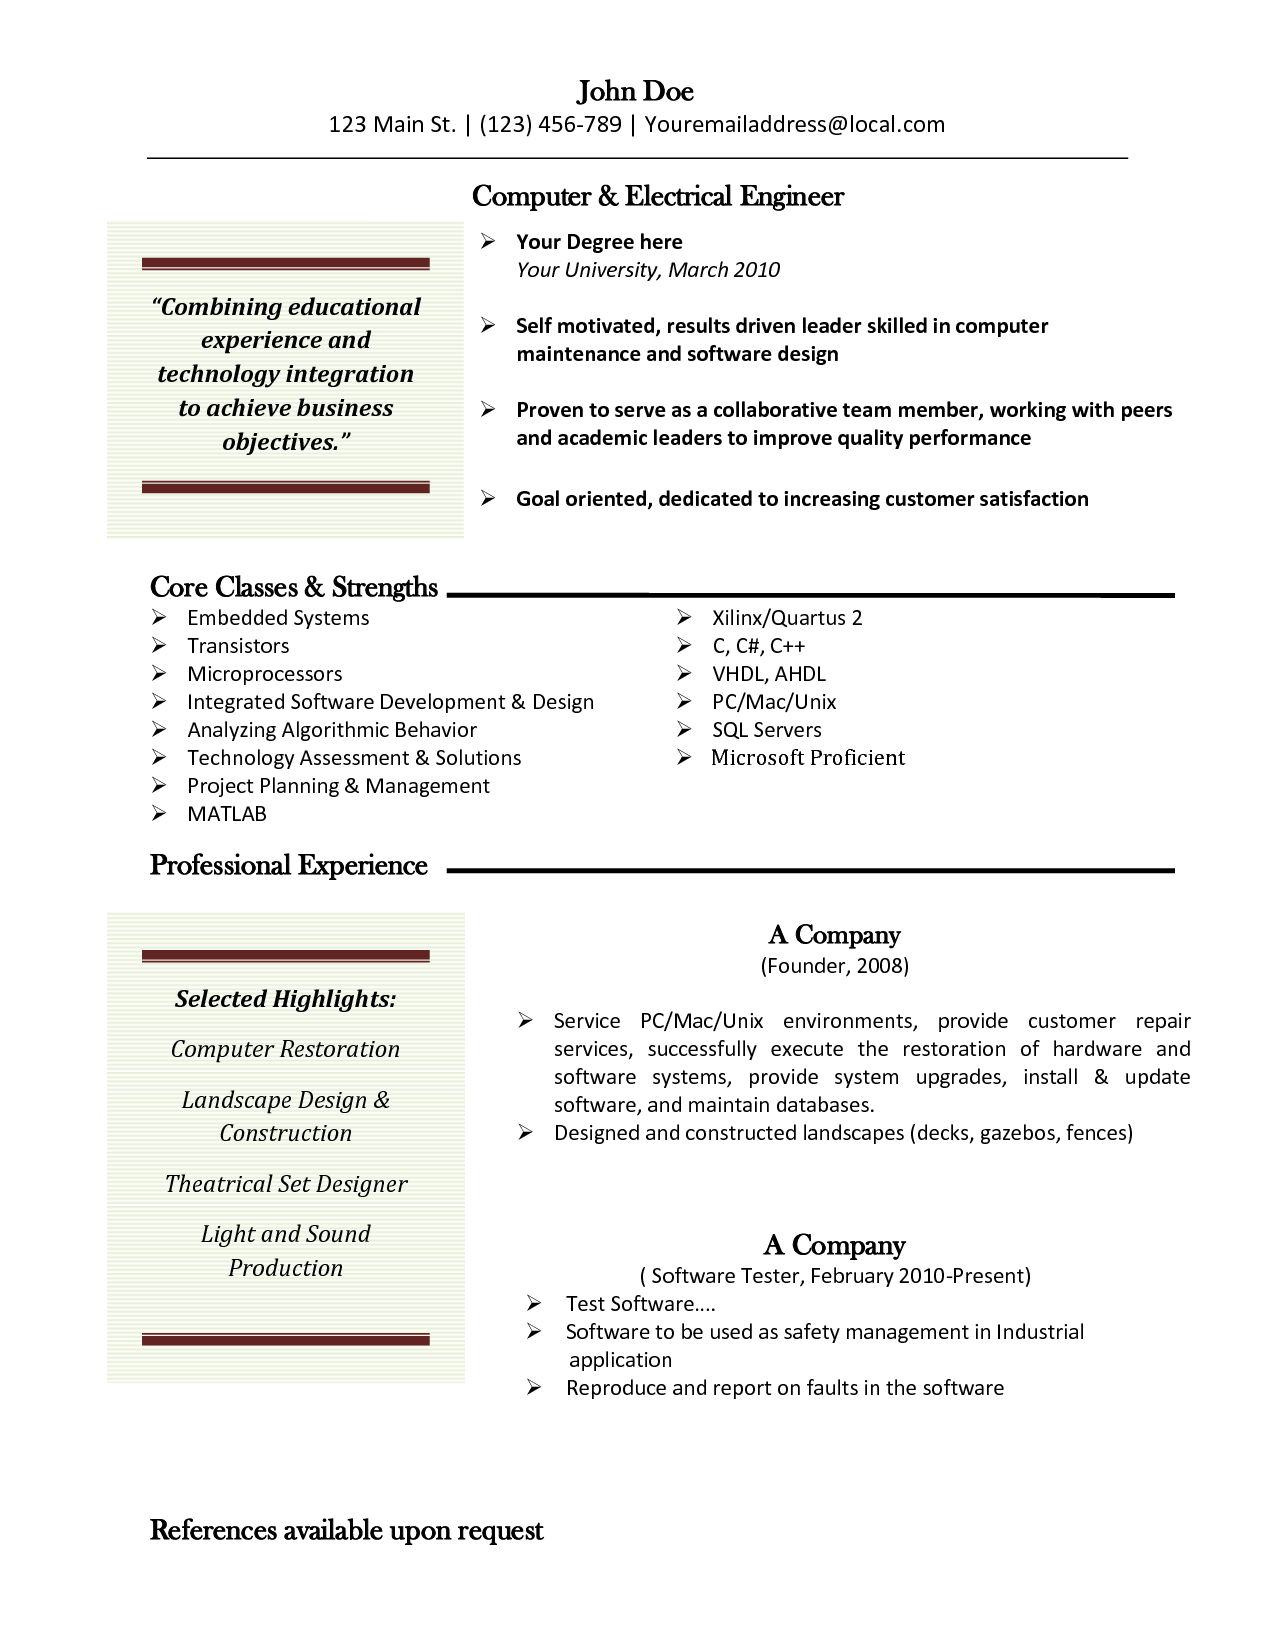 Microsoft Test Engineer Sample Resume Resume Templates For Mac  Httpwwwjobresumewebsiteresume